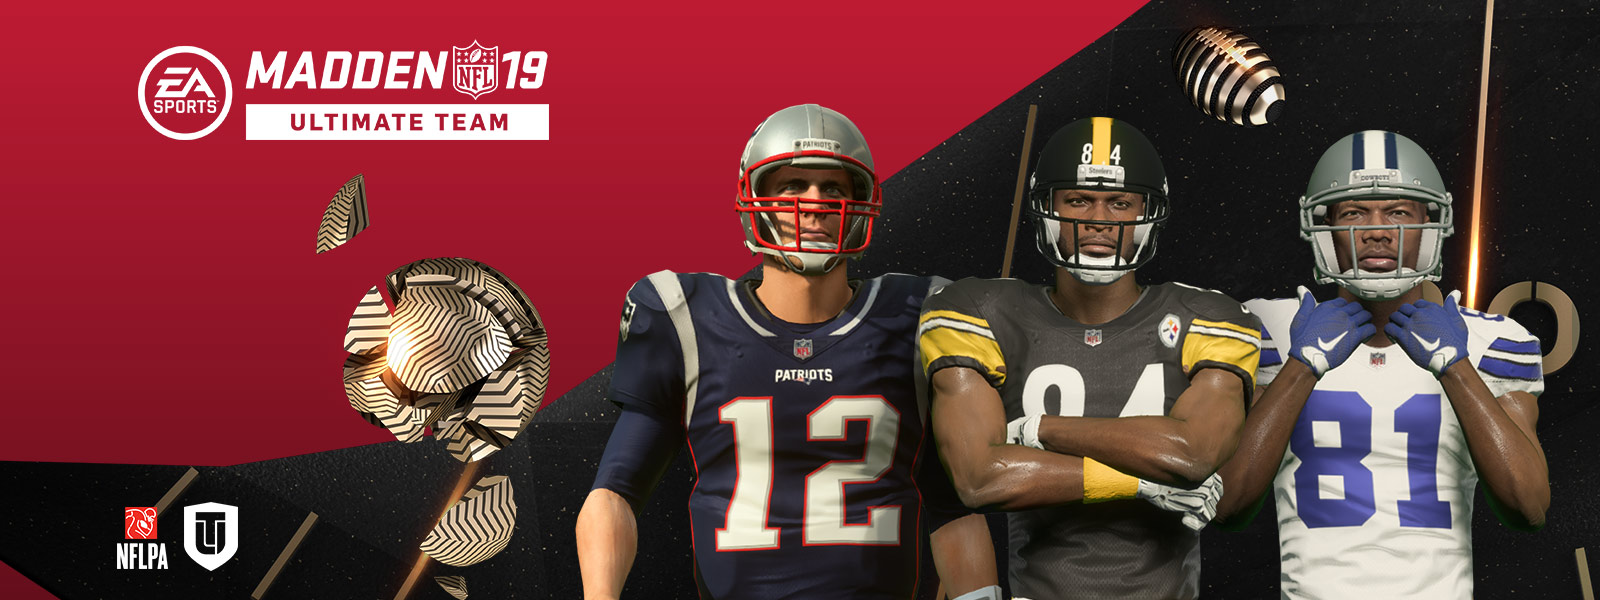 Madden NFL 19 Ultimate Team, Vista frontal de Tom Brady, Antonio Brown e Terrell Owens